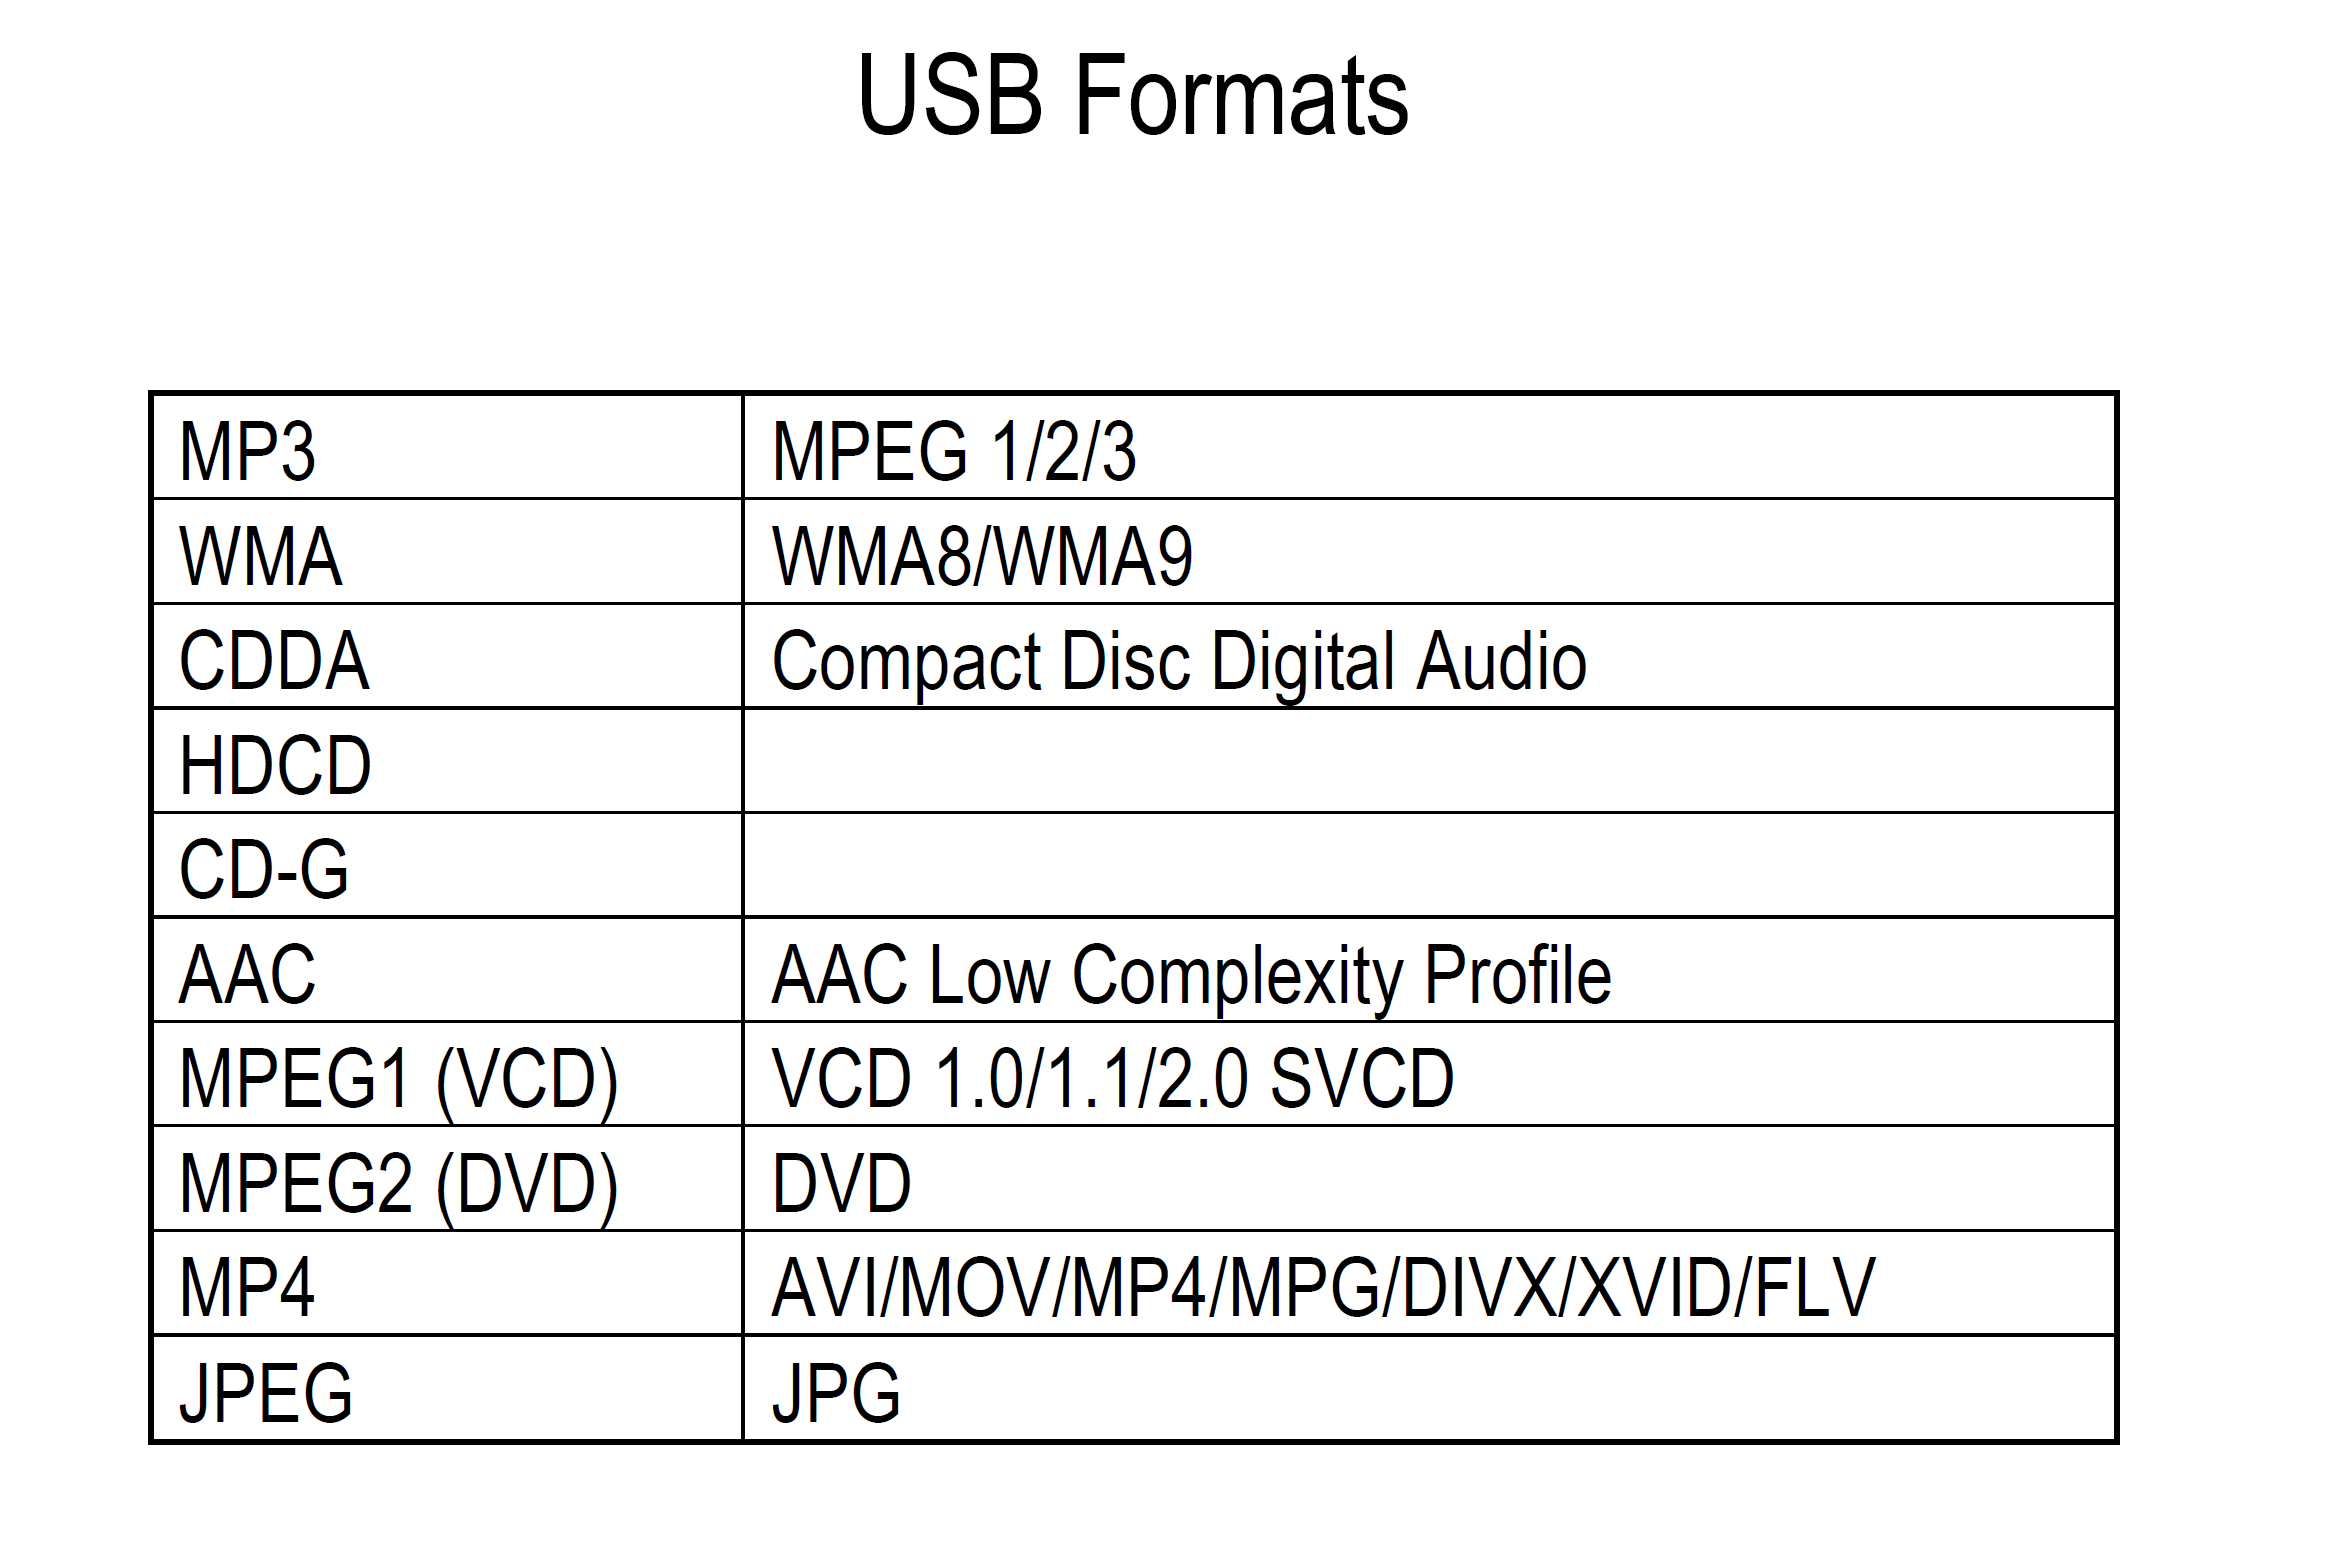 DVD5800 USB SD Formats